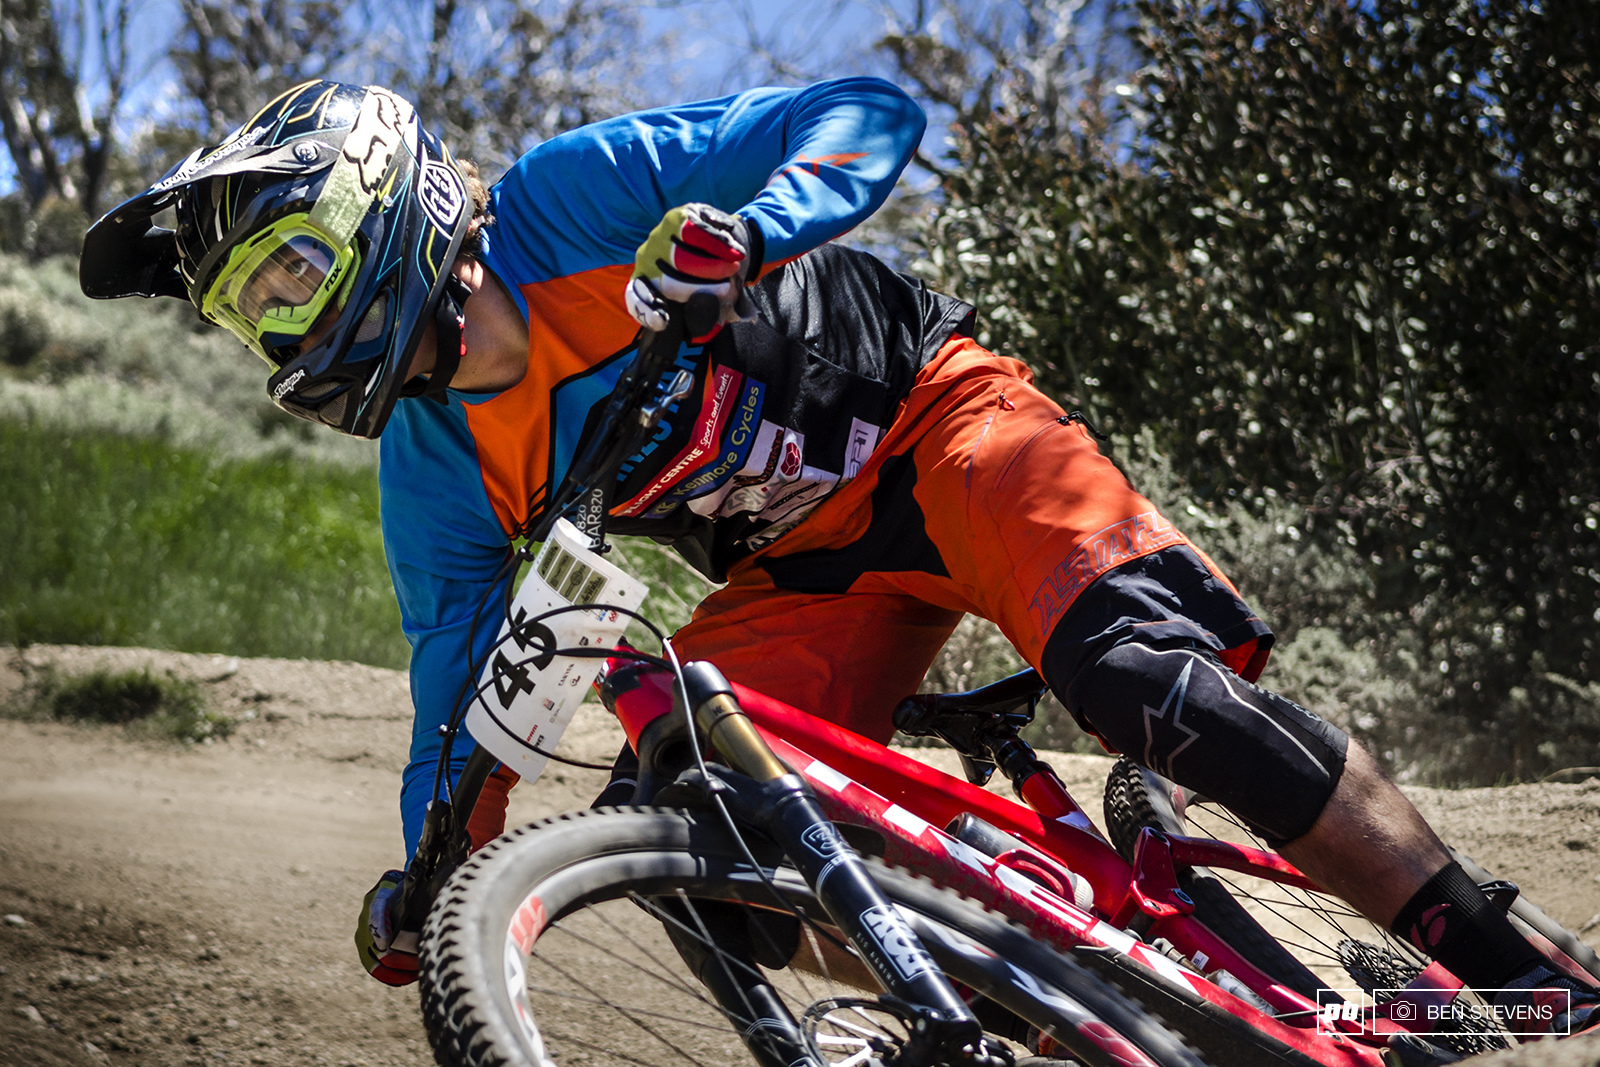 Ben Forbes looked quick all weekend taking the win in the Canyon All Mountain Assault